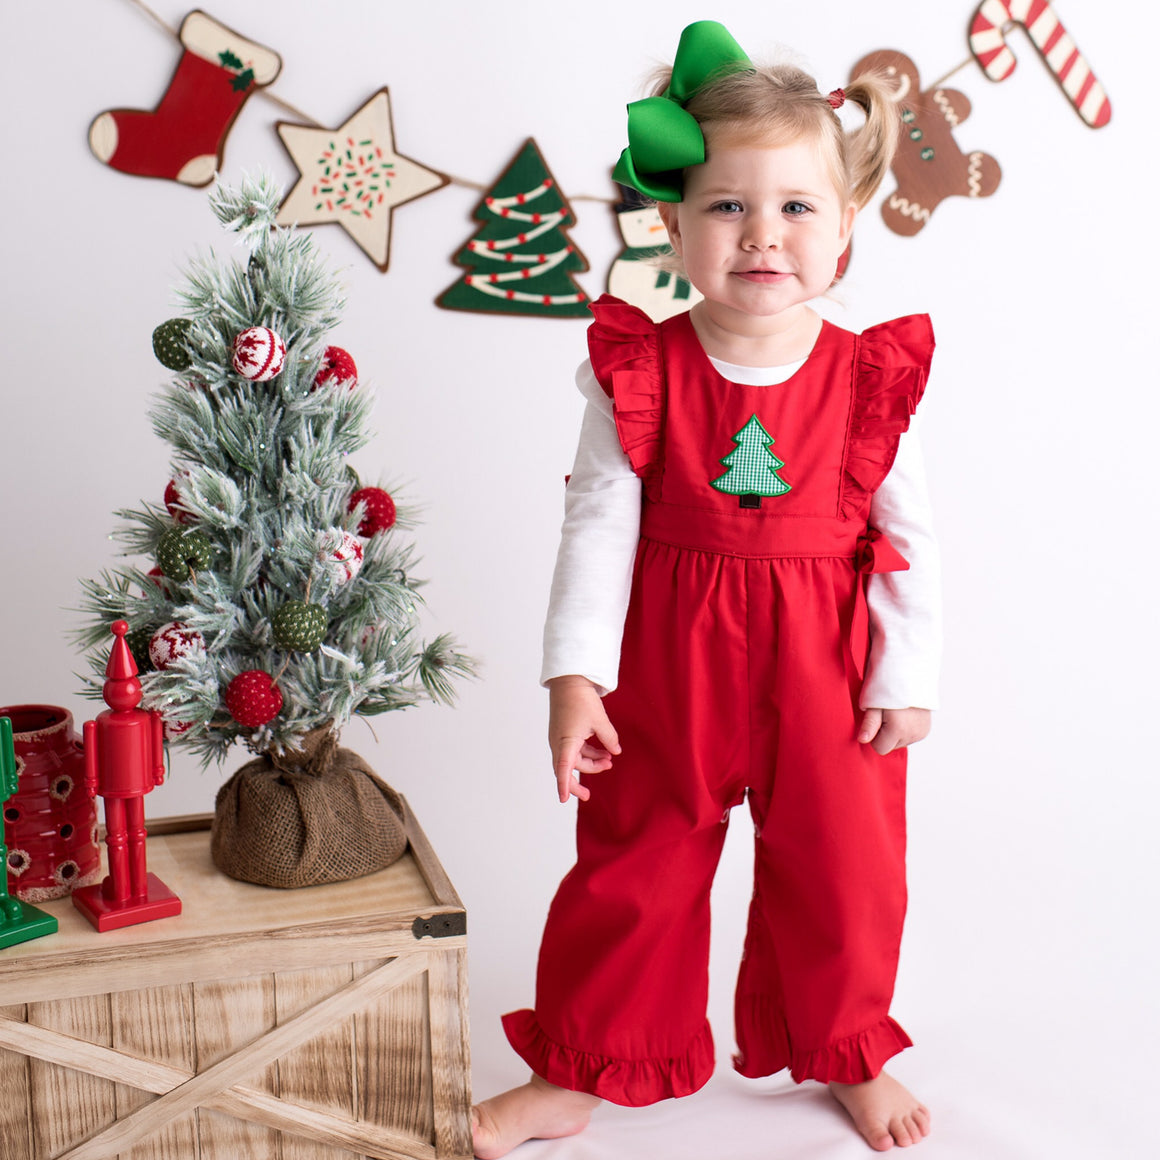 Red Ruffle Christmas Romper with Green Gingham Christmas Tree Applique